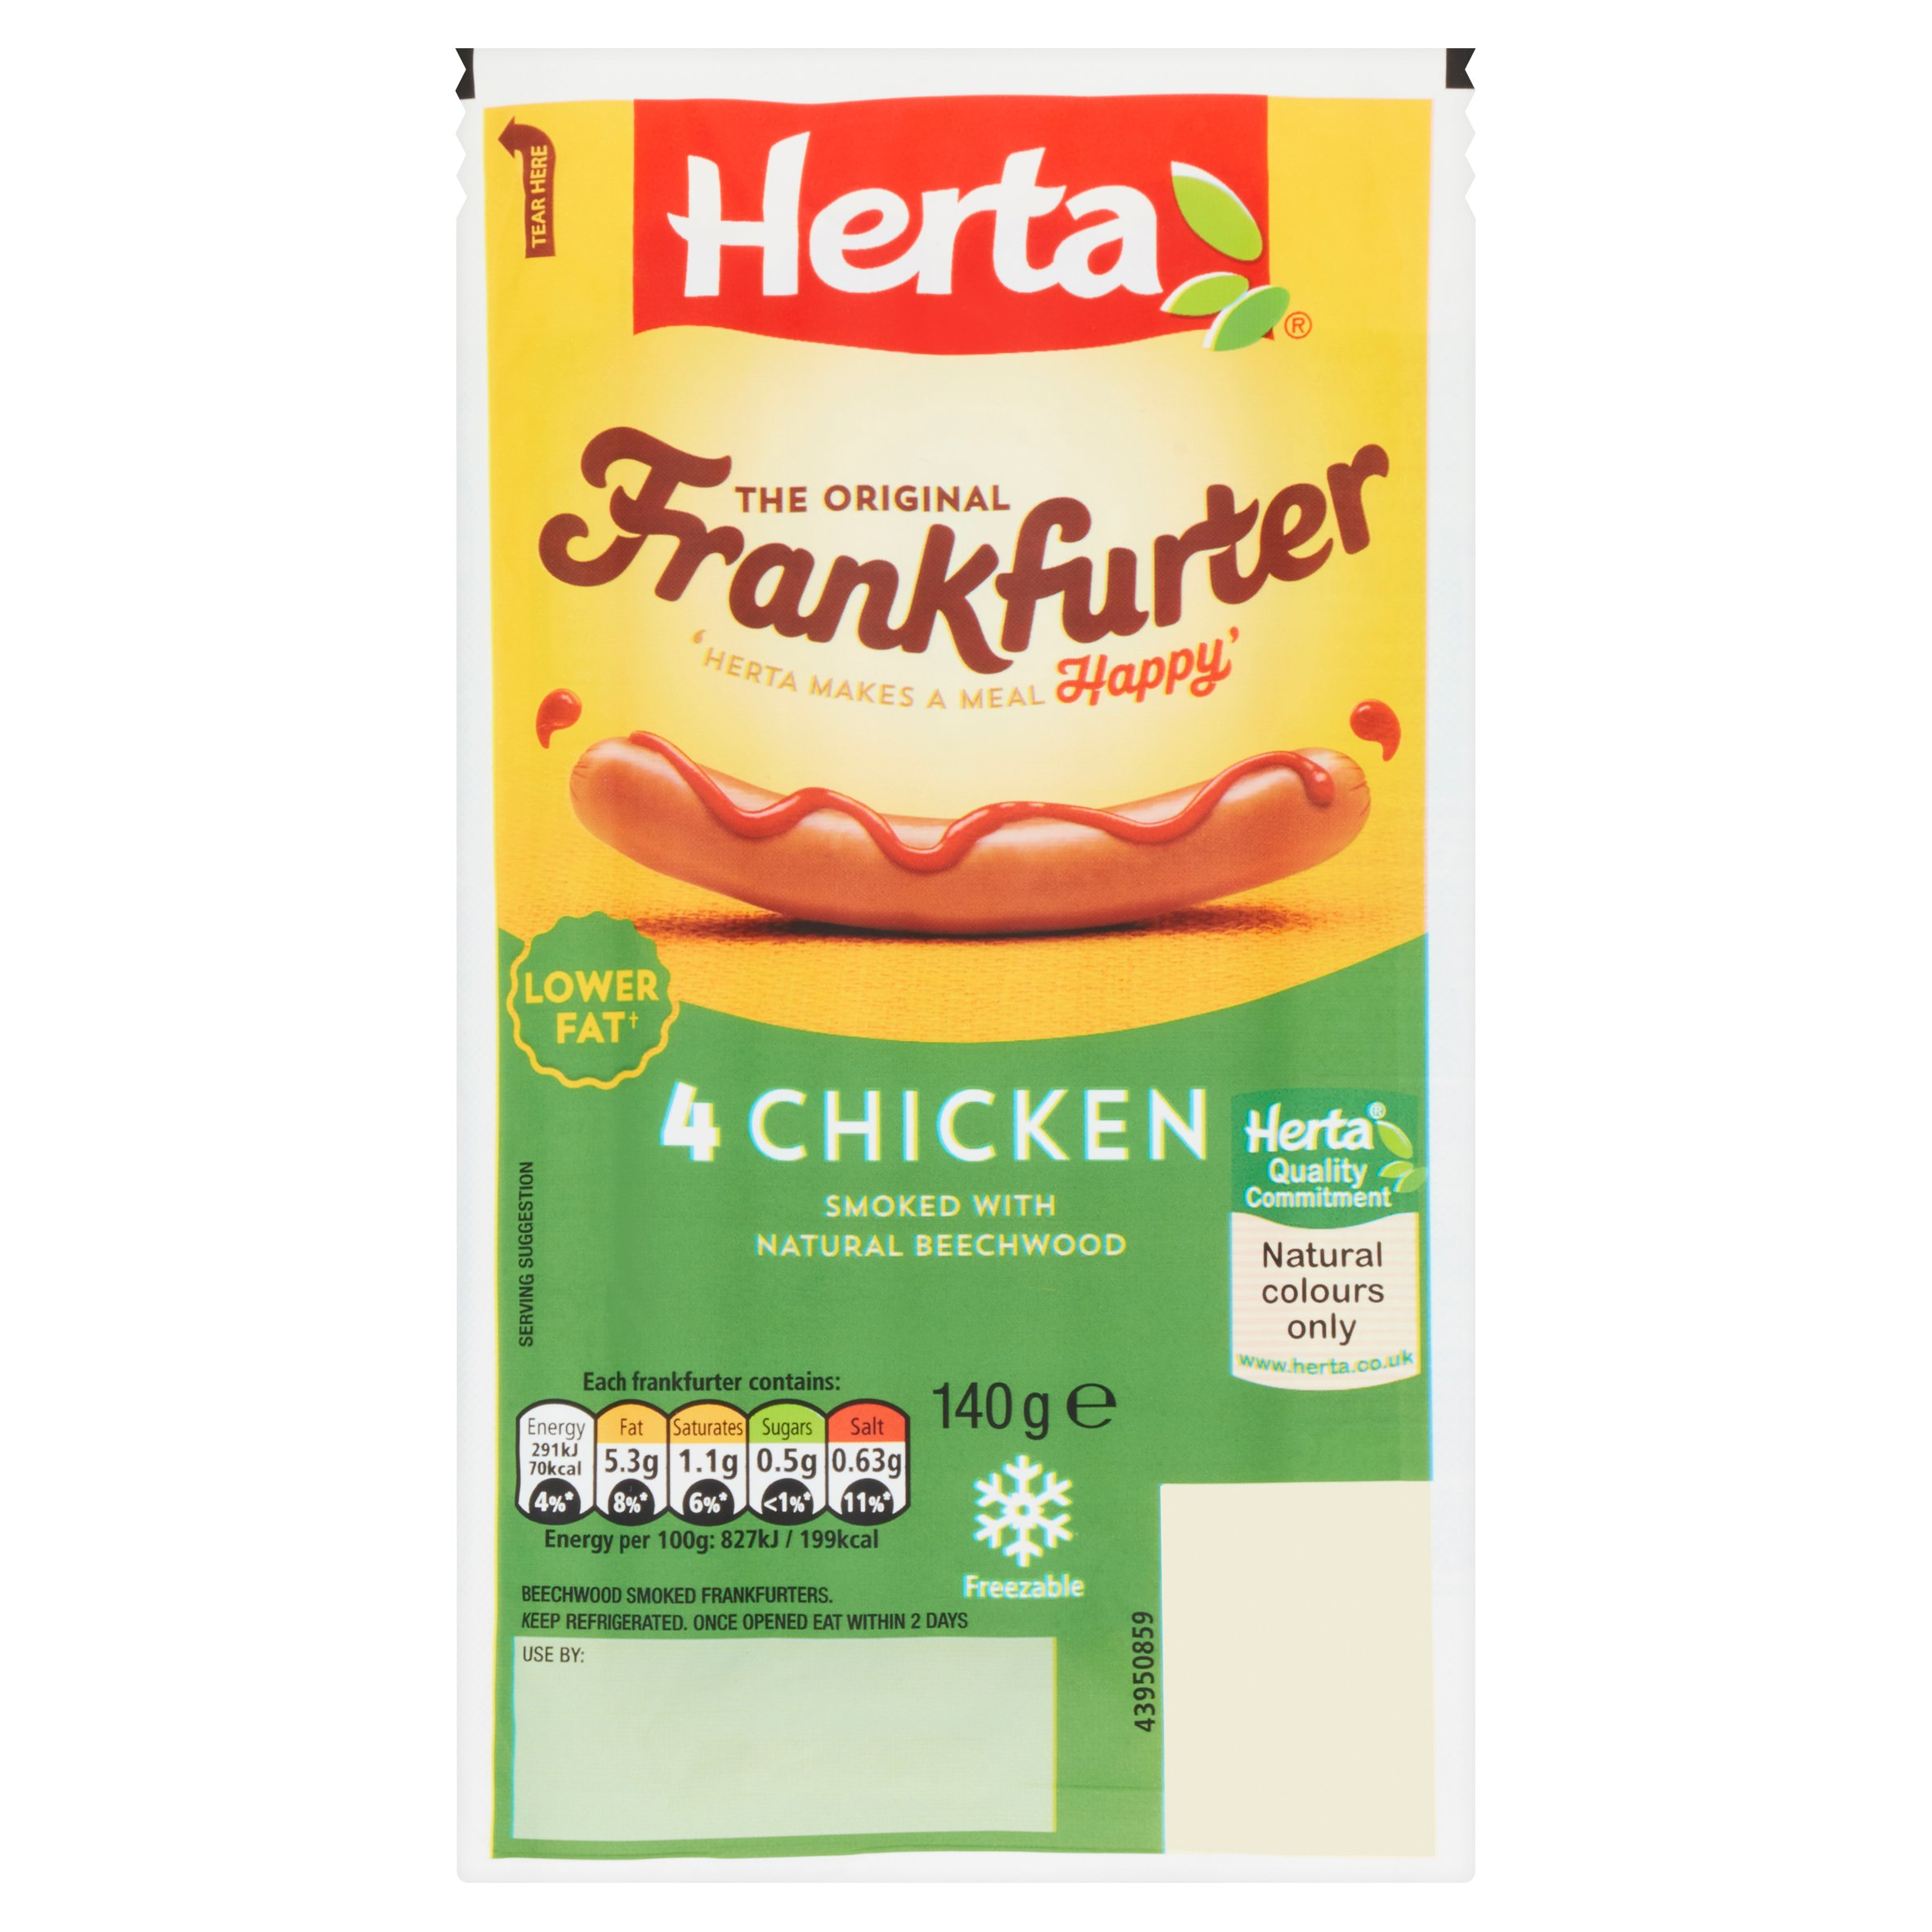 Herta 4 Chicken Frankfurter Hot Dog 140G